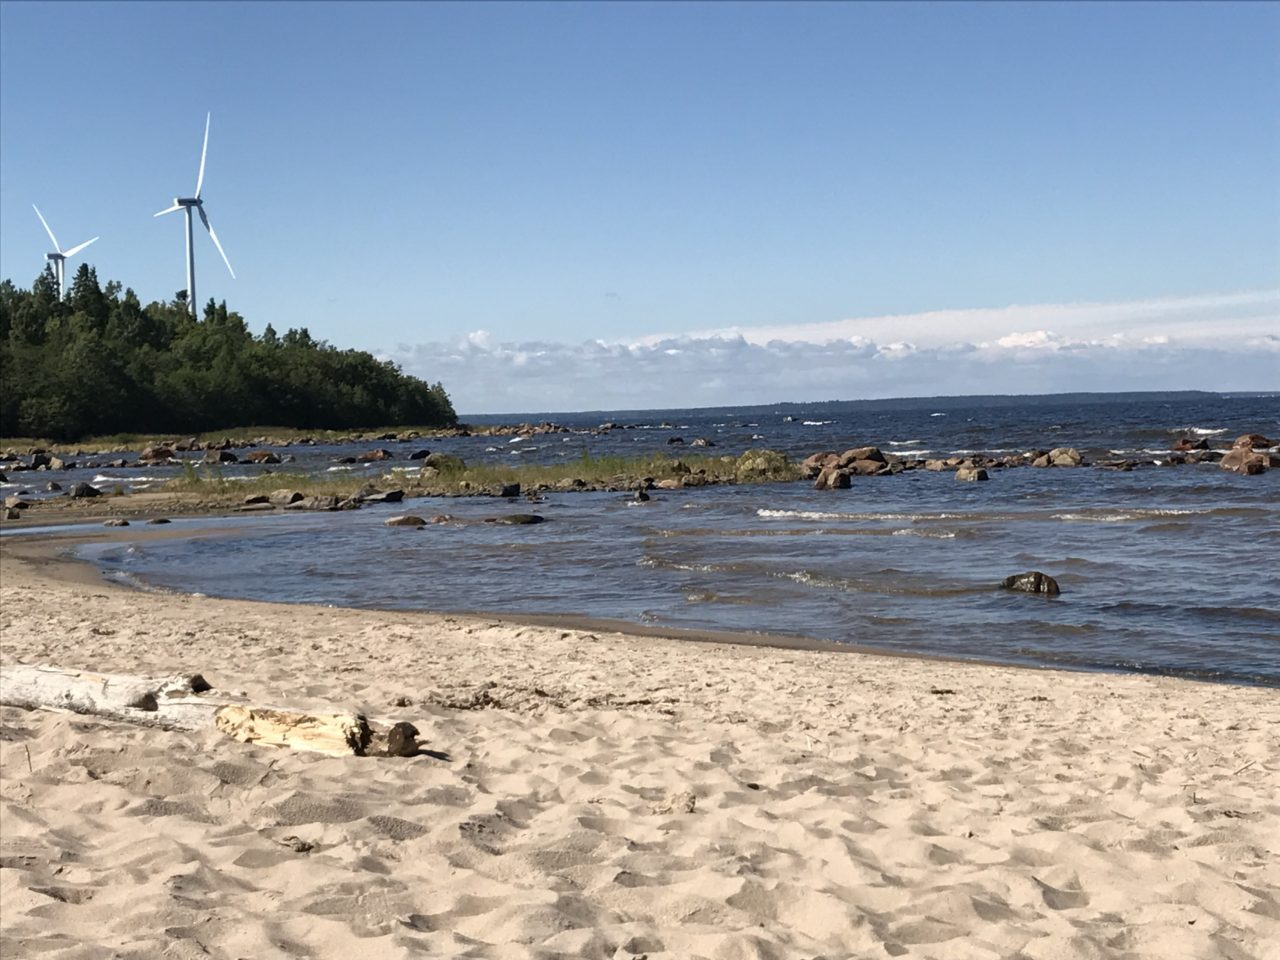 Sand And Rocks On Beach With Two Windmills In The Background